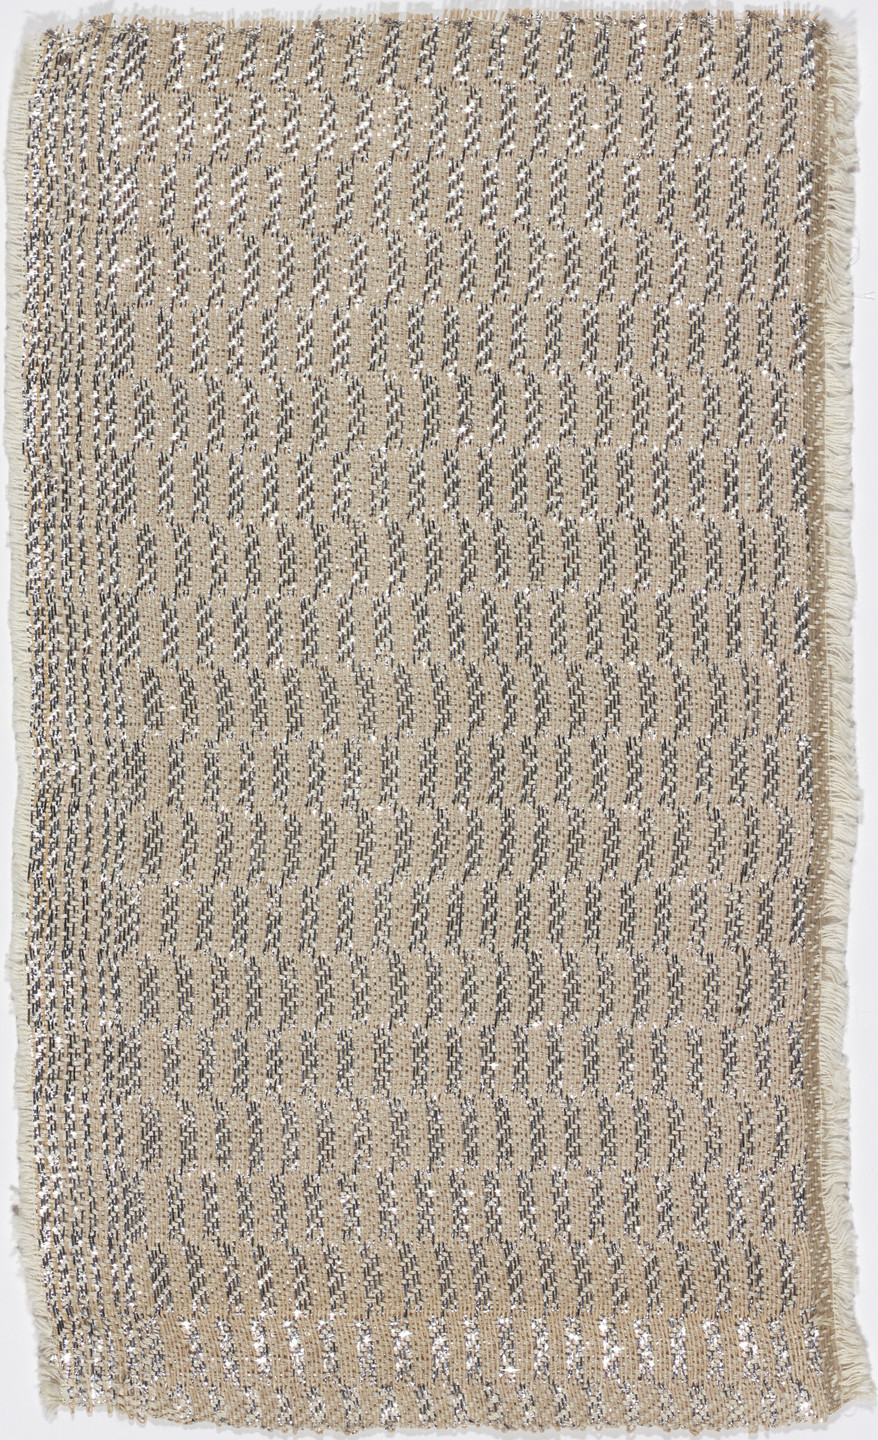 Anni Albers. Display Material. 1947